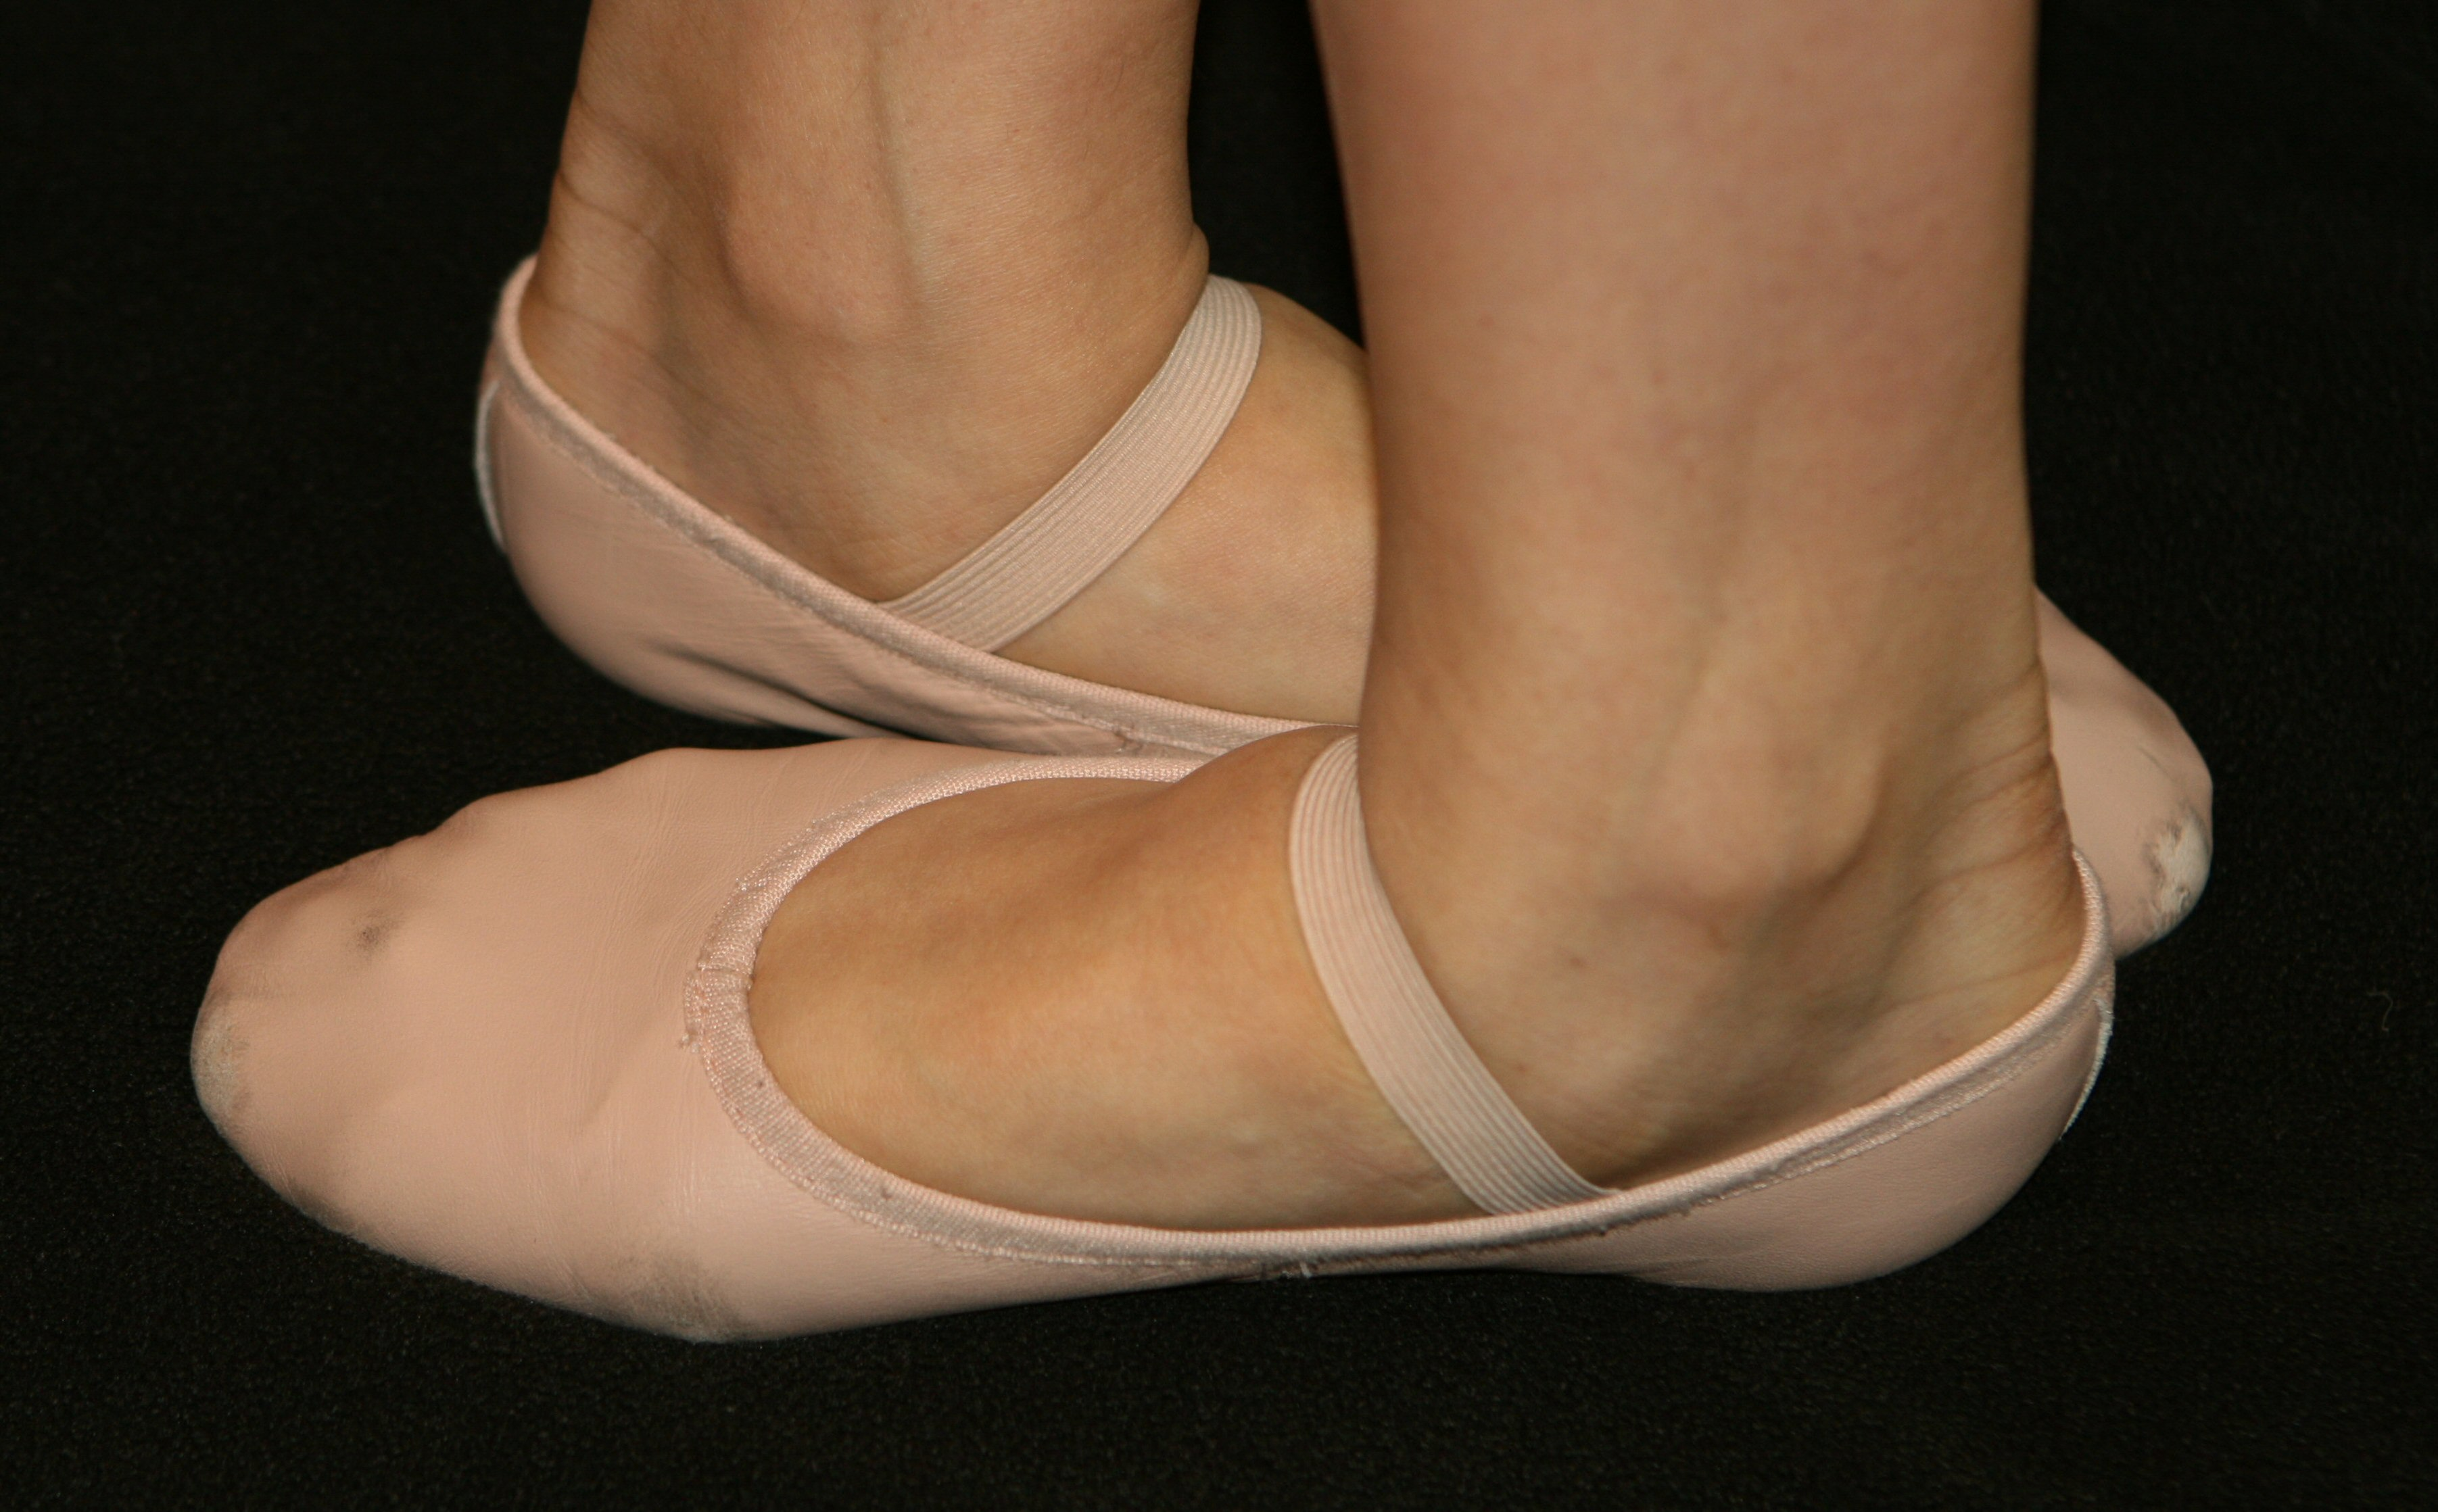 eada7a282 Ballet shoe - The complete information and online sale with free ...